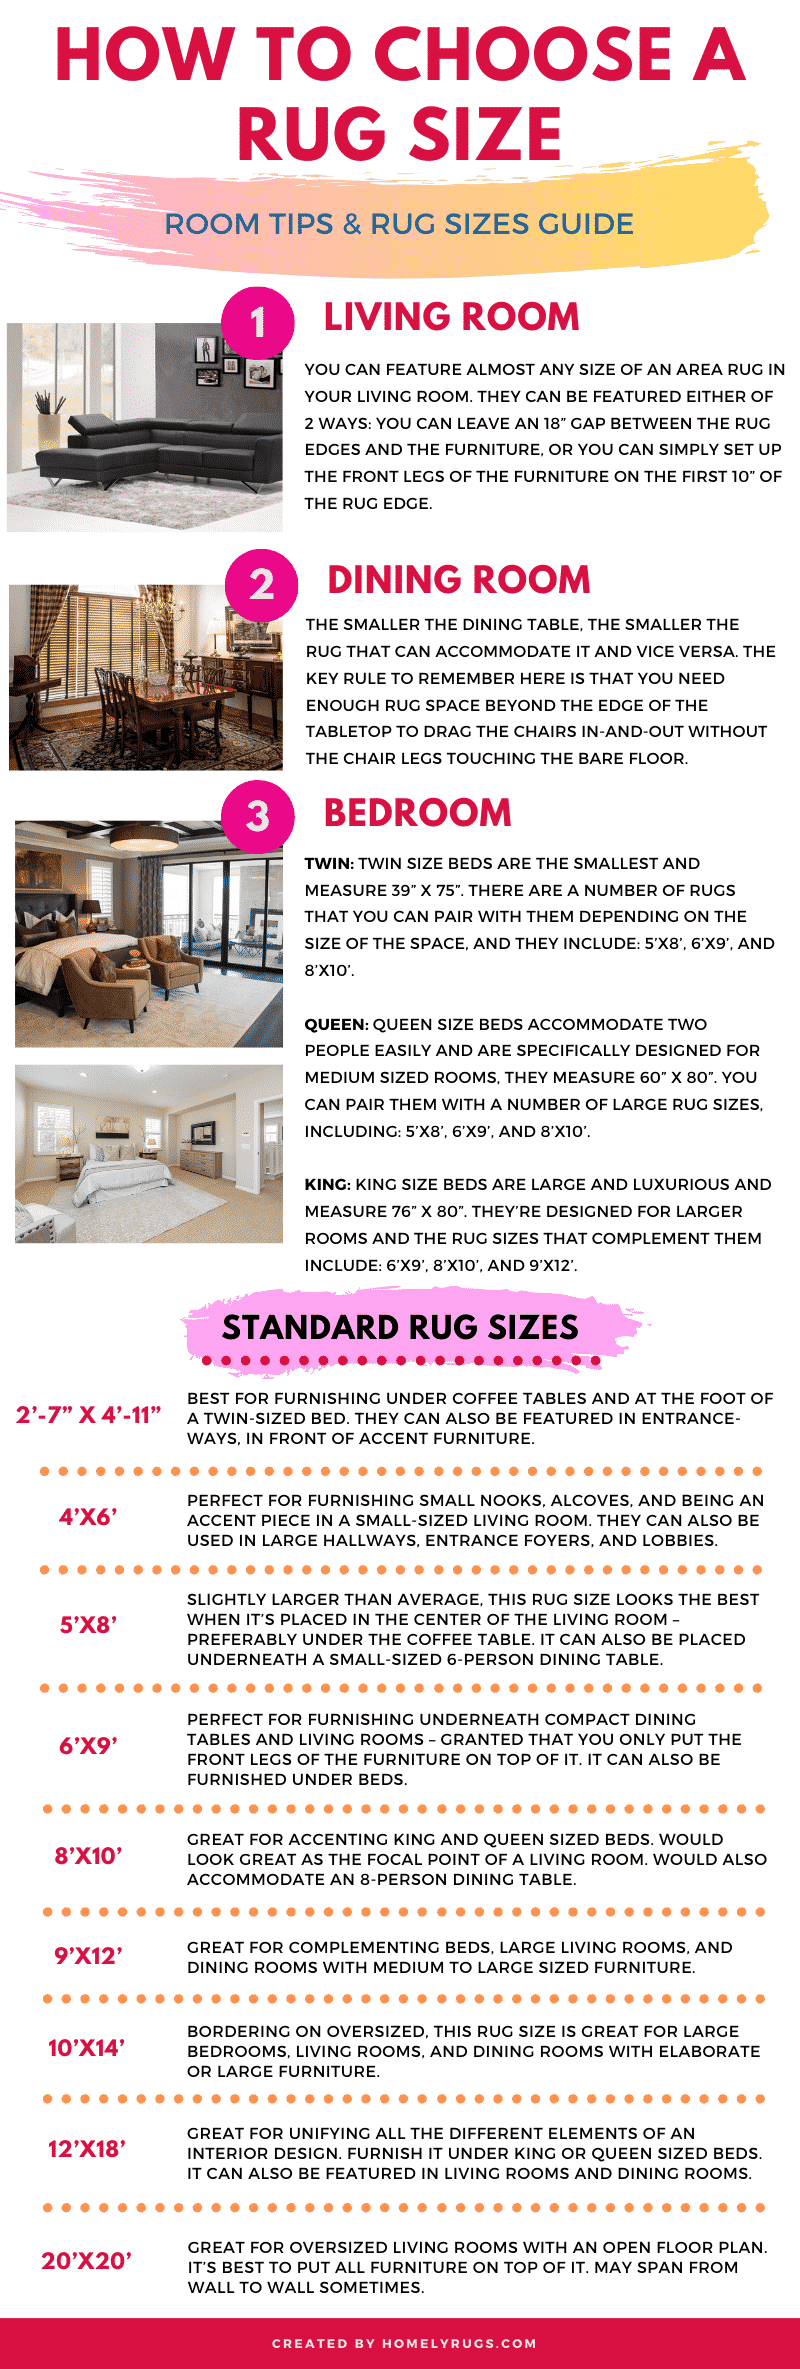 Standard Rug Sizes Chart & Guide Infographic